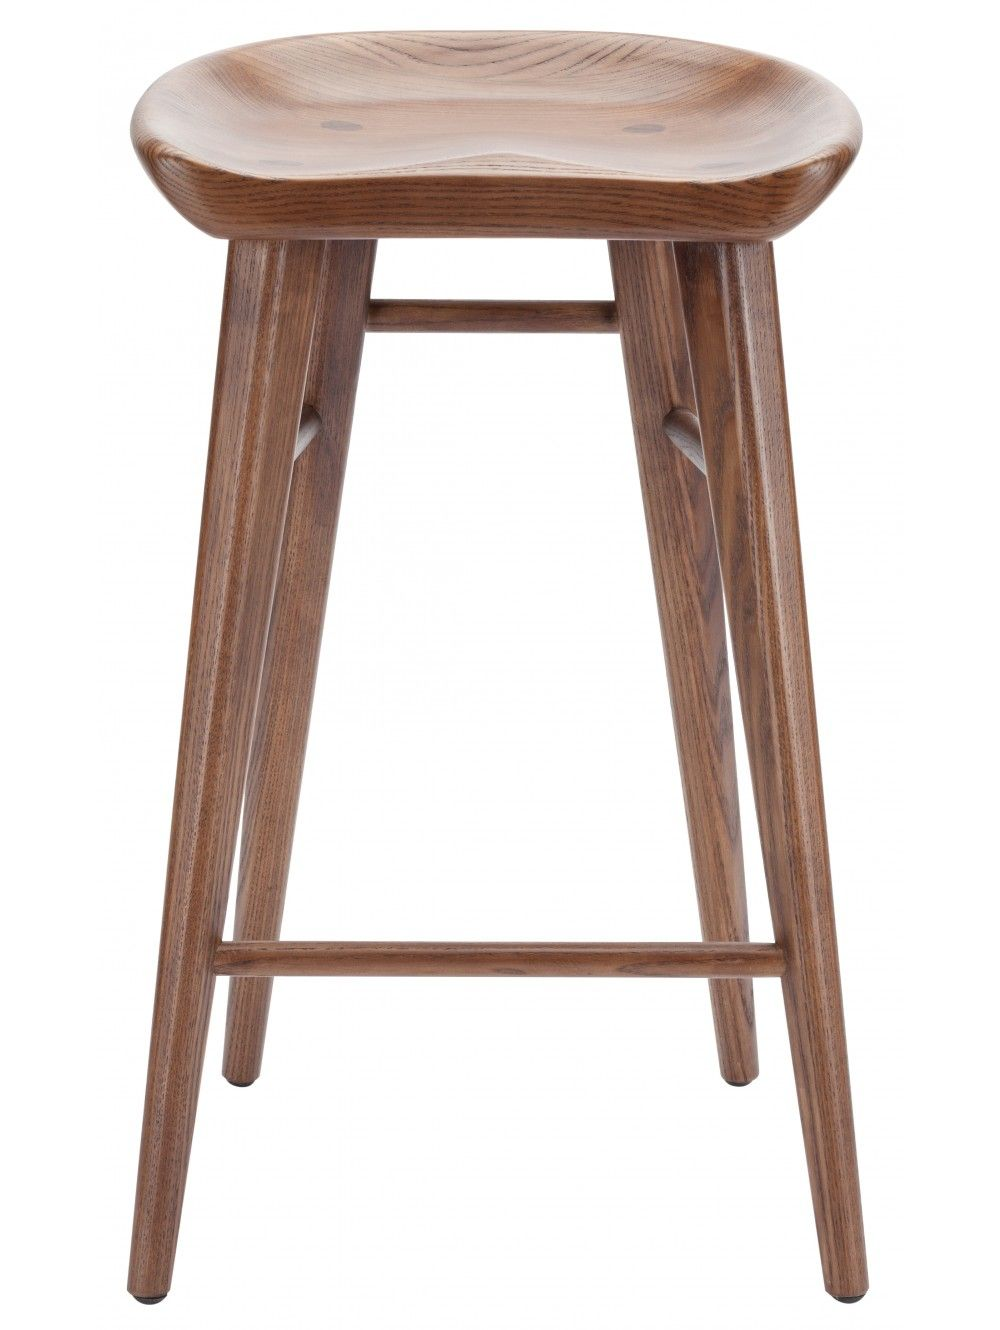 Barrett counter stool walnut dining room furniture dining chairs dining area dining